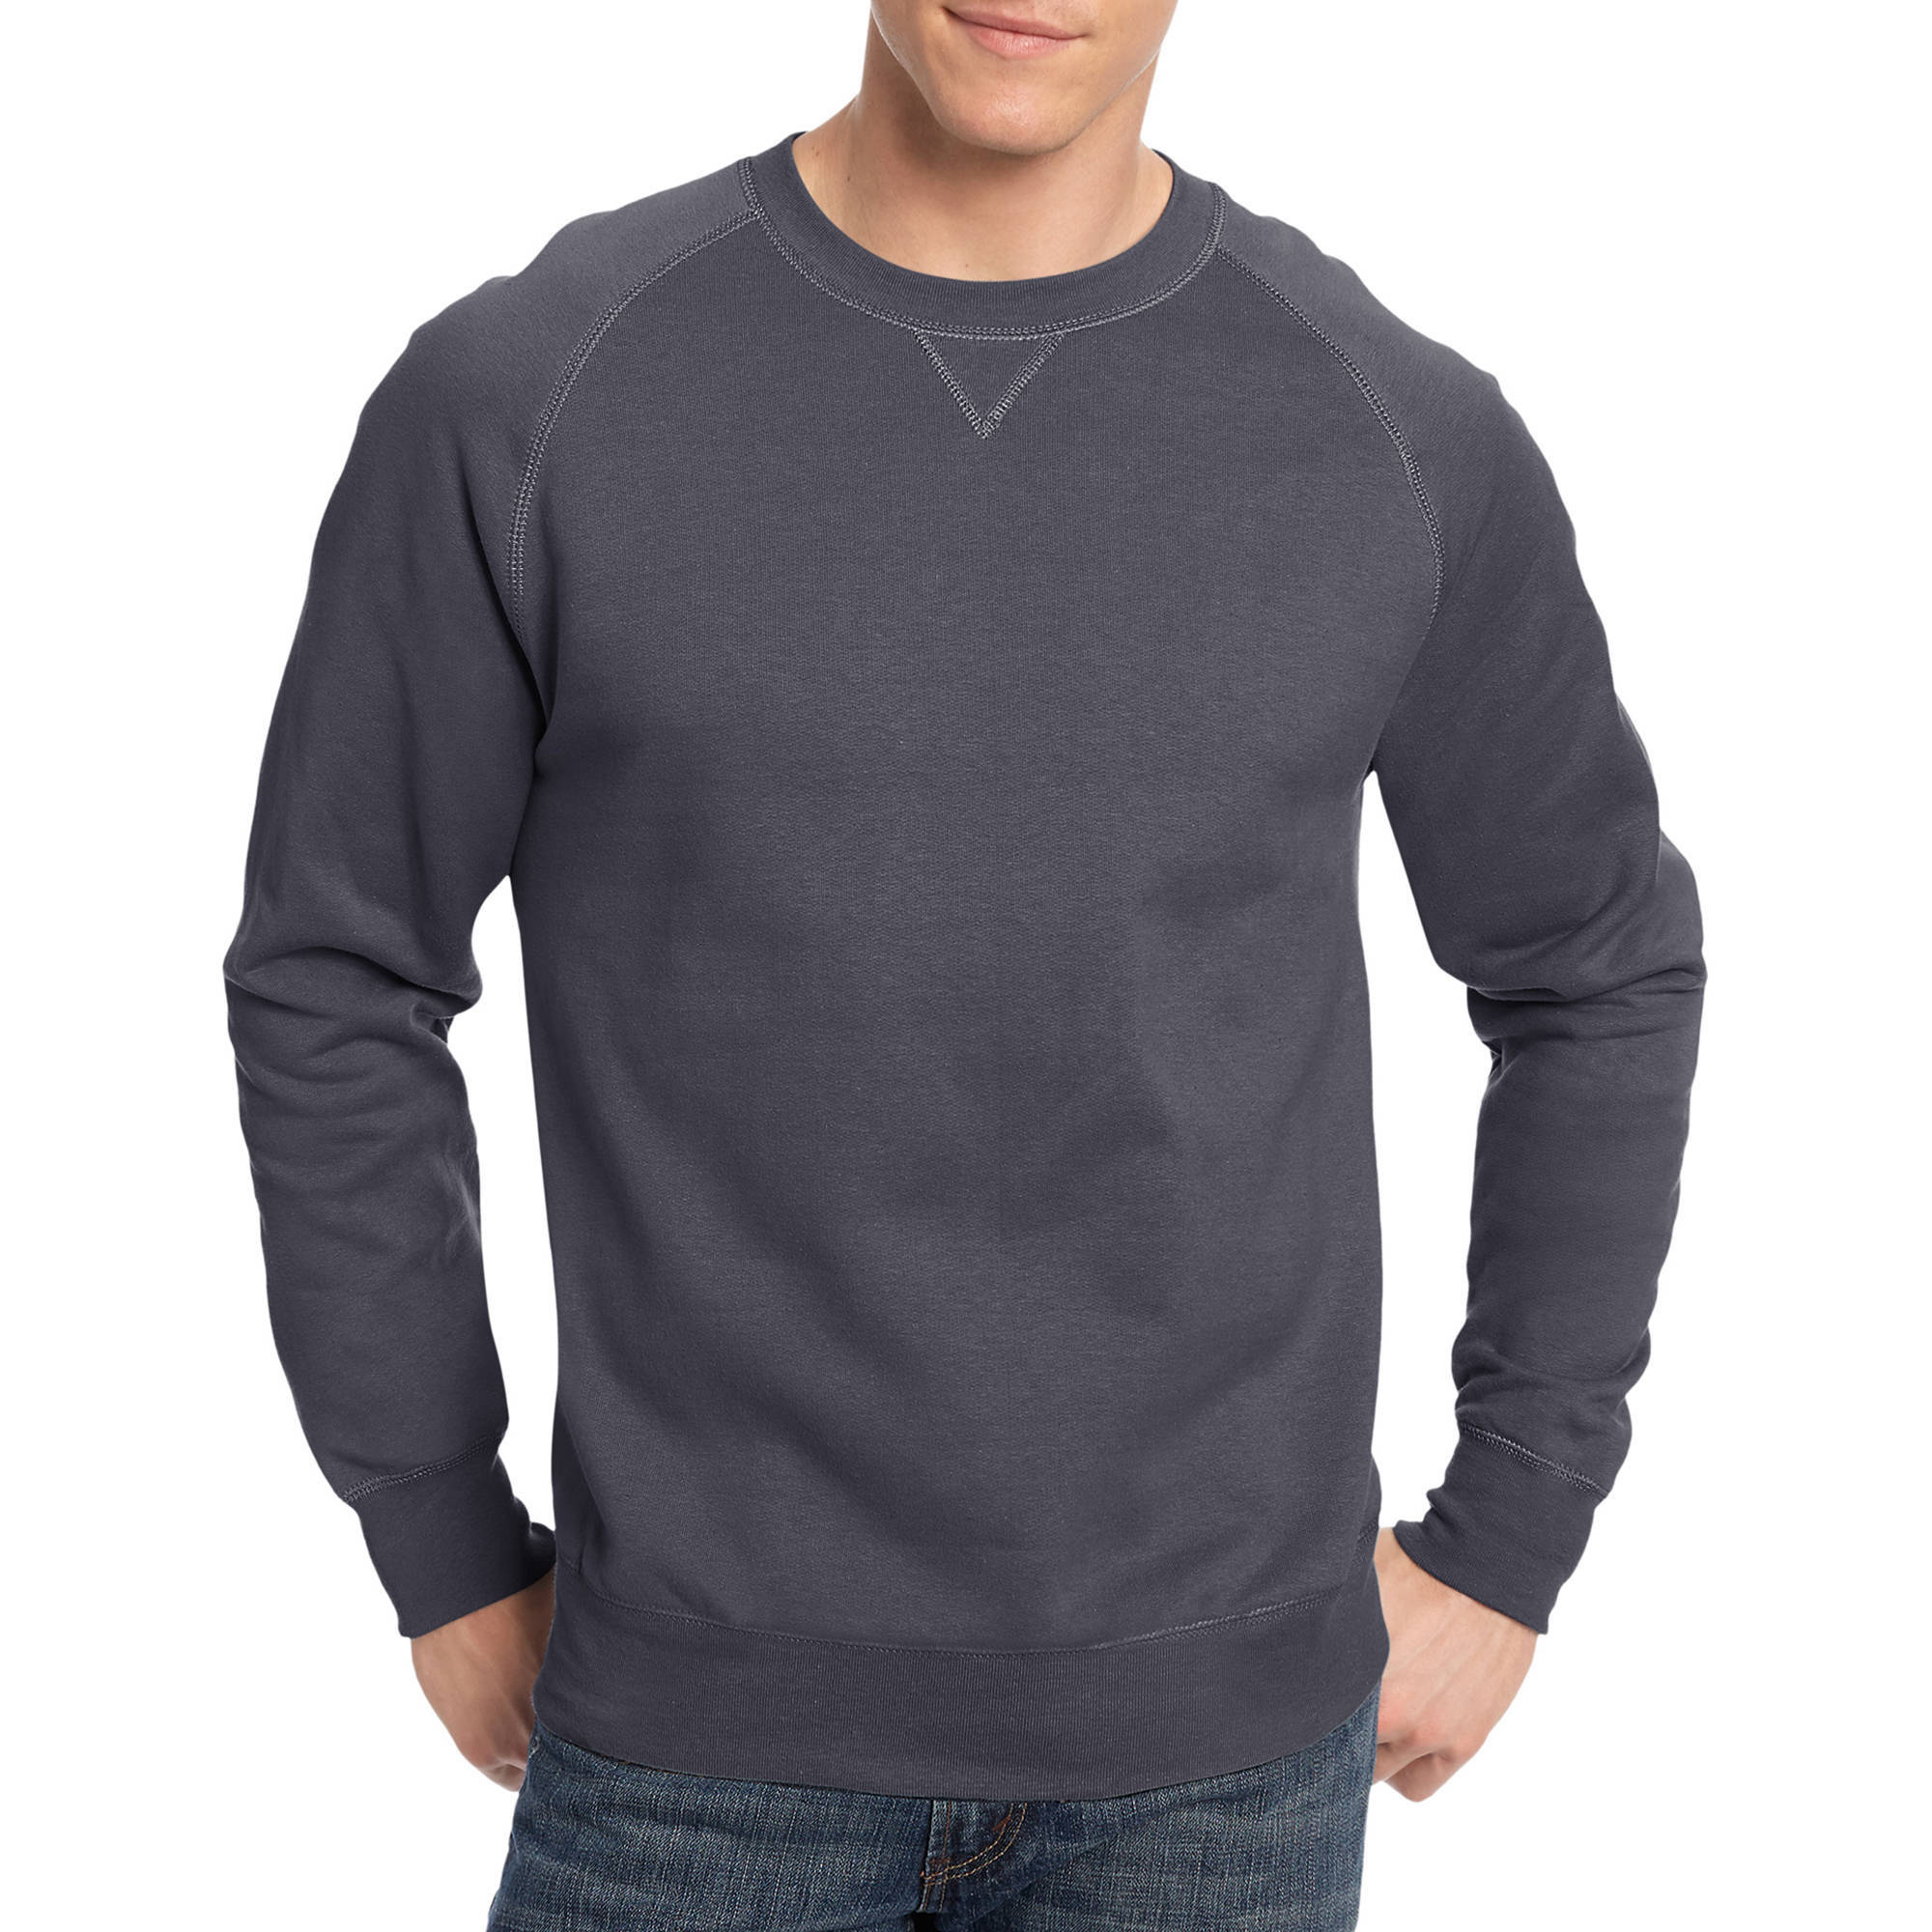 Men's Nano Premium Soft Lightweight Fleece Sweatshirt